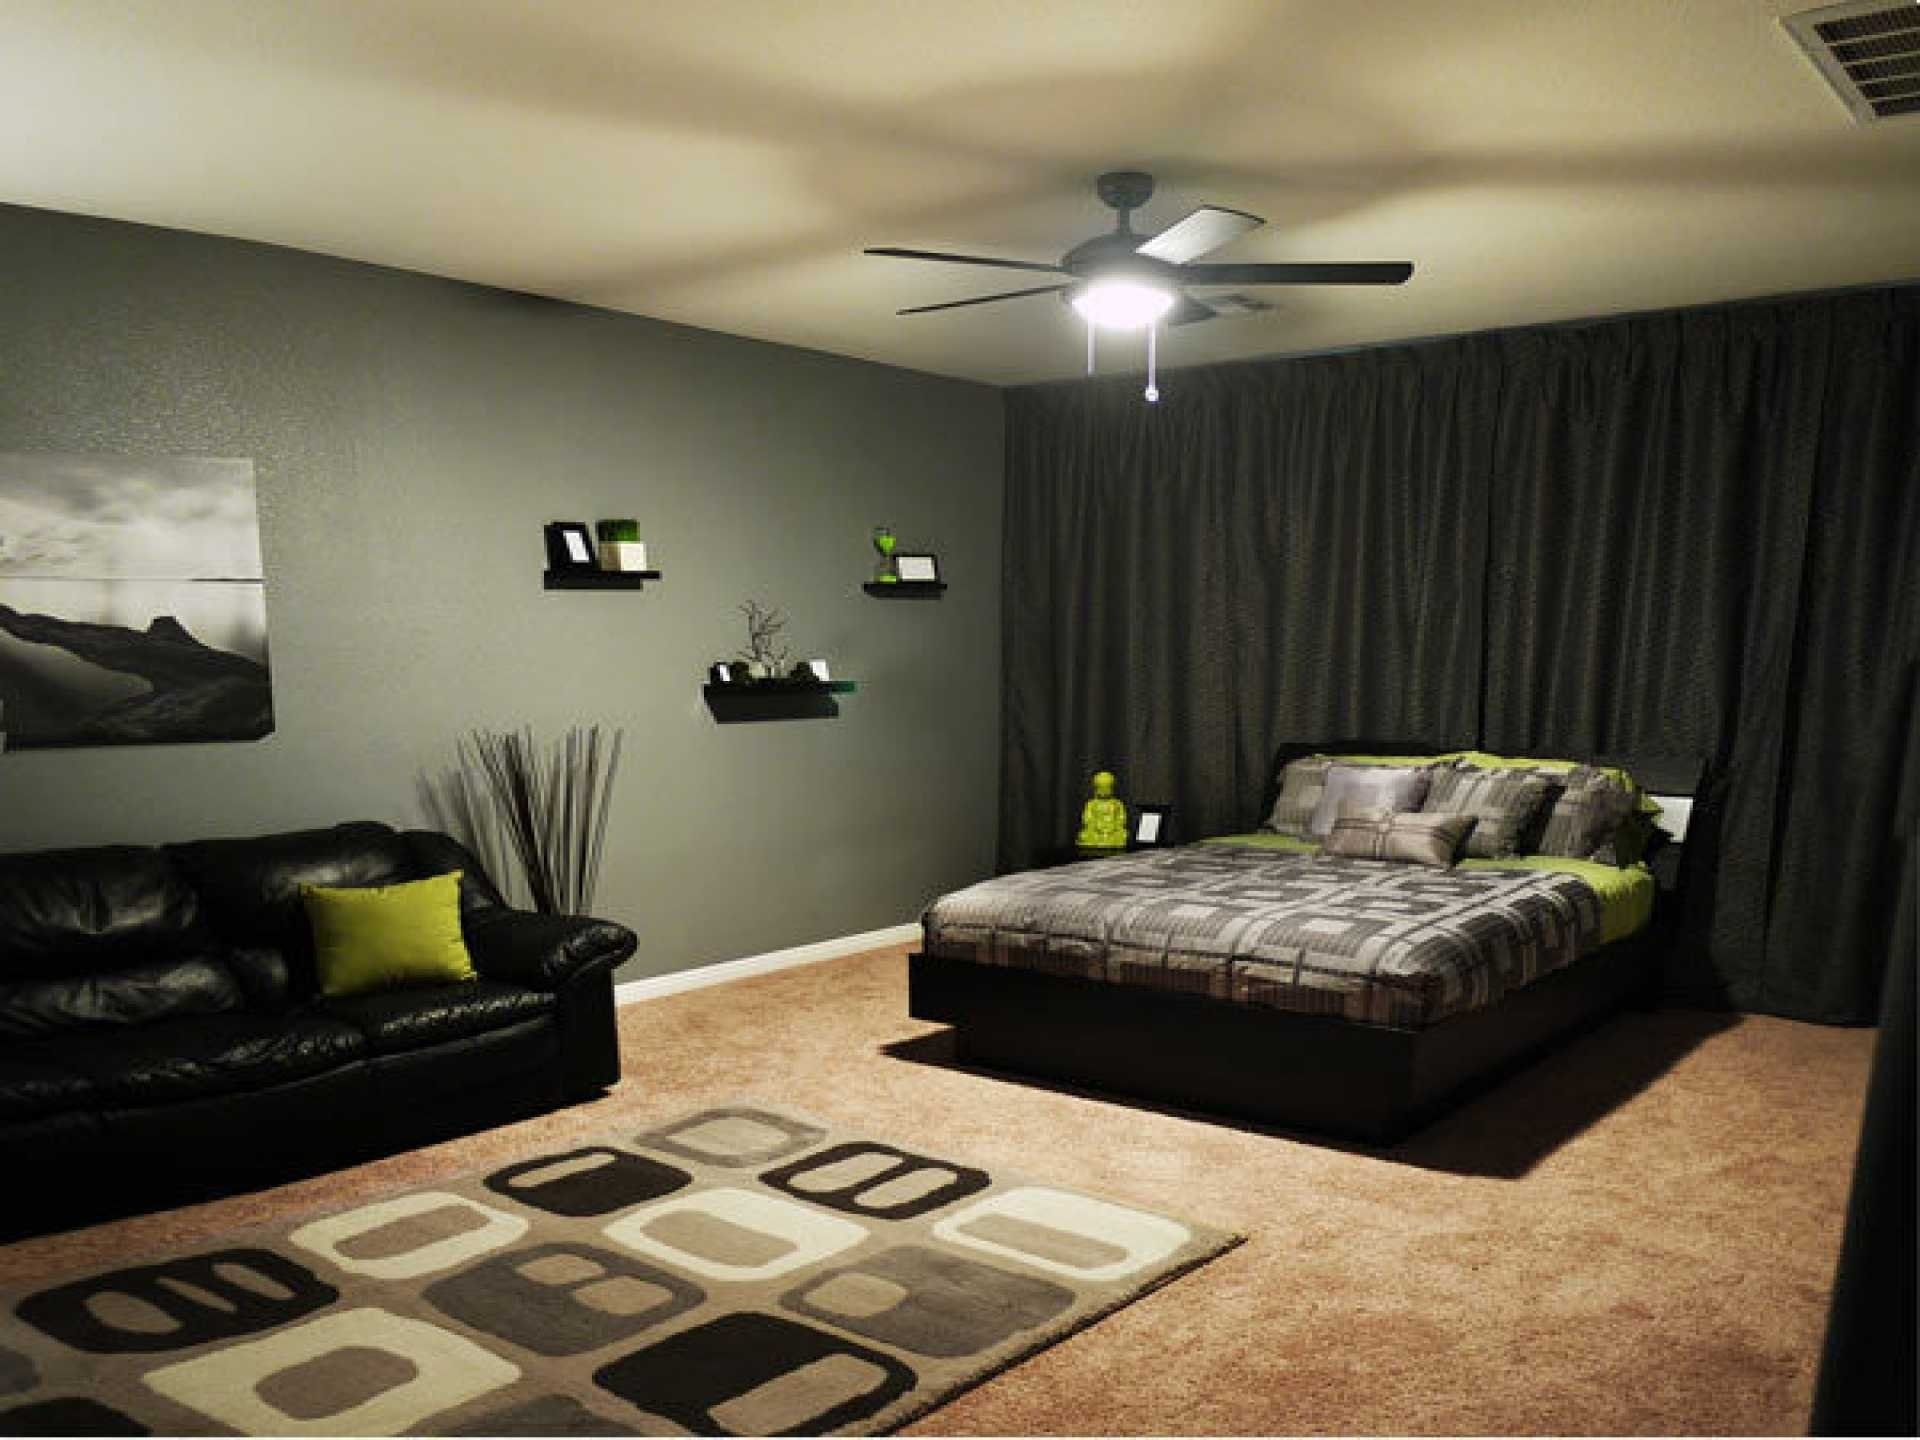 10 Spectacular Cool Room Ideas For Guys interior bedrooms alluring cool boys rooms little room bedroom 2020